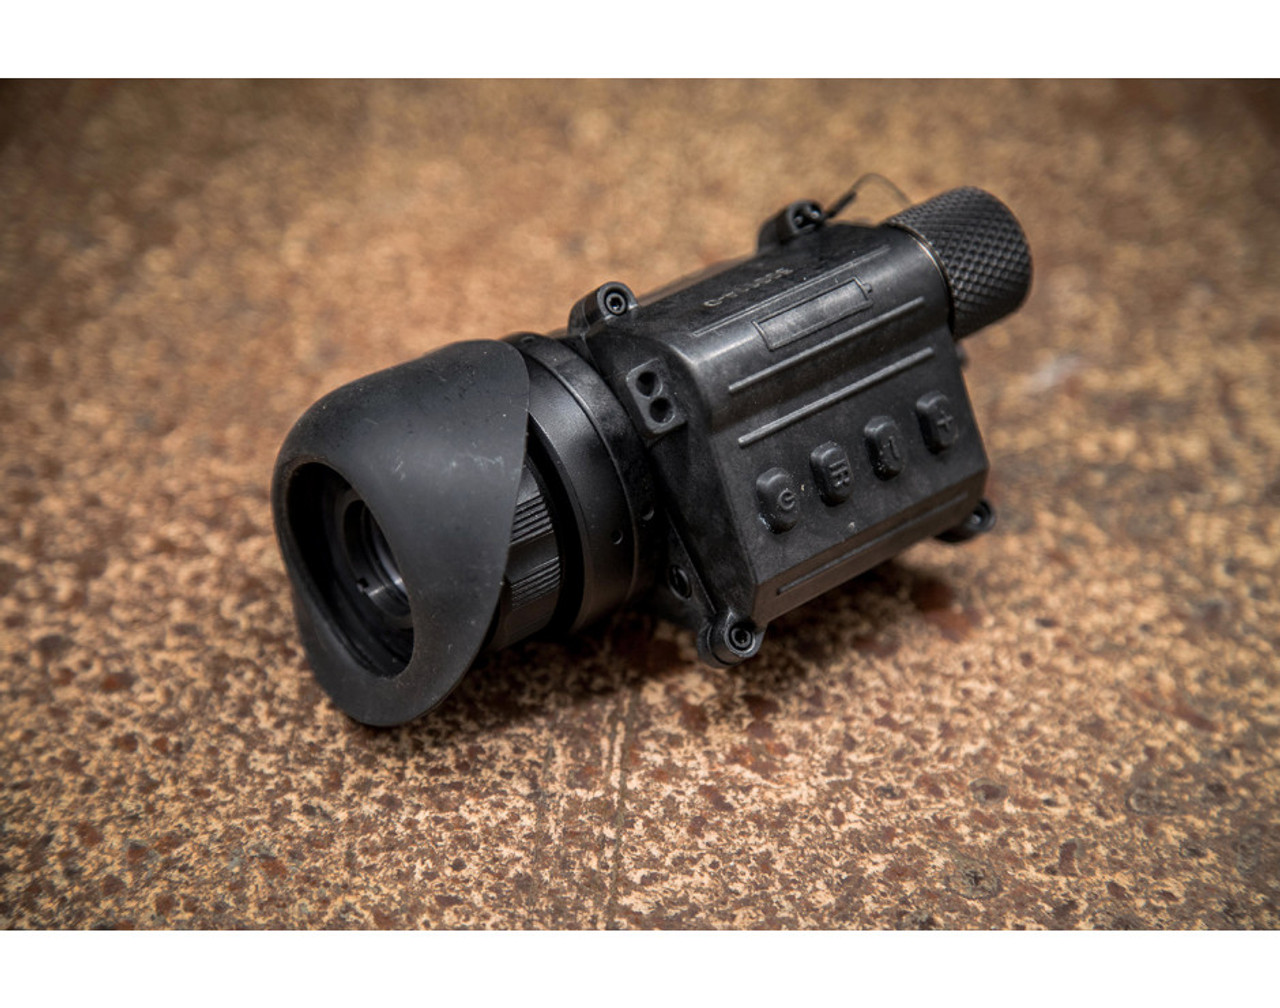 """AGM PVS14-OMEGA 3AW1 Light Weight Night Vision Monocular 51 degree FOV Gen 3+ Auto-Gated """"White Phosphor Level 1"""". Made in USA (AGM PVS14-OMEGA 3AW1)"""